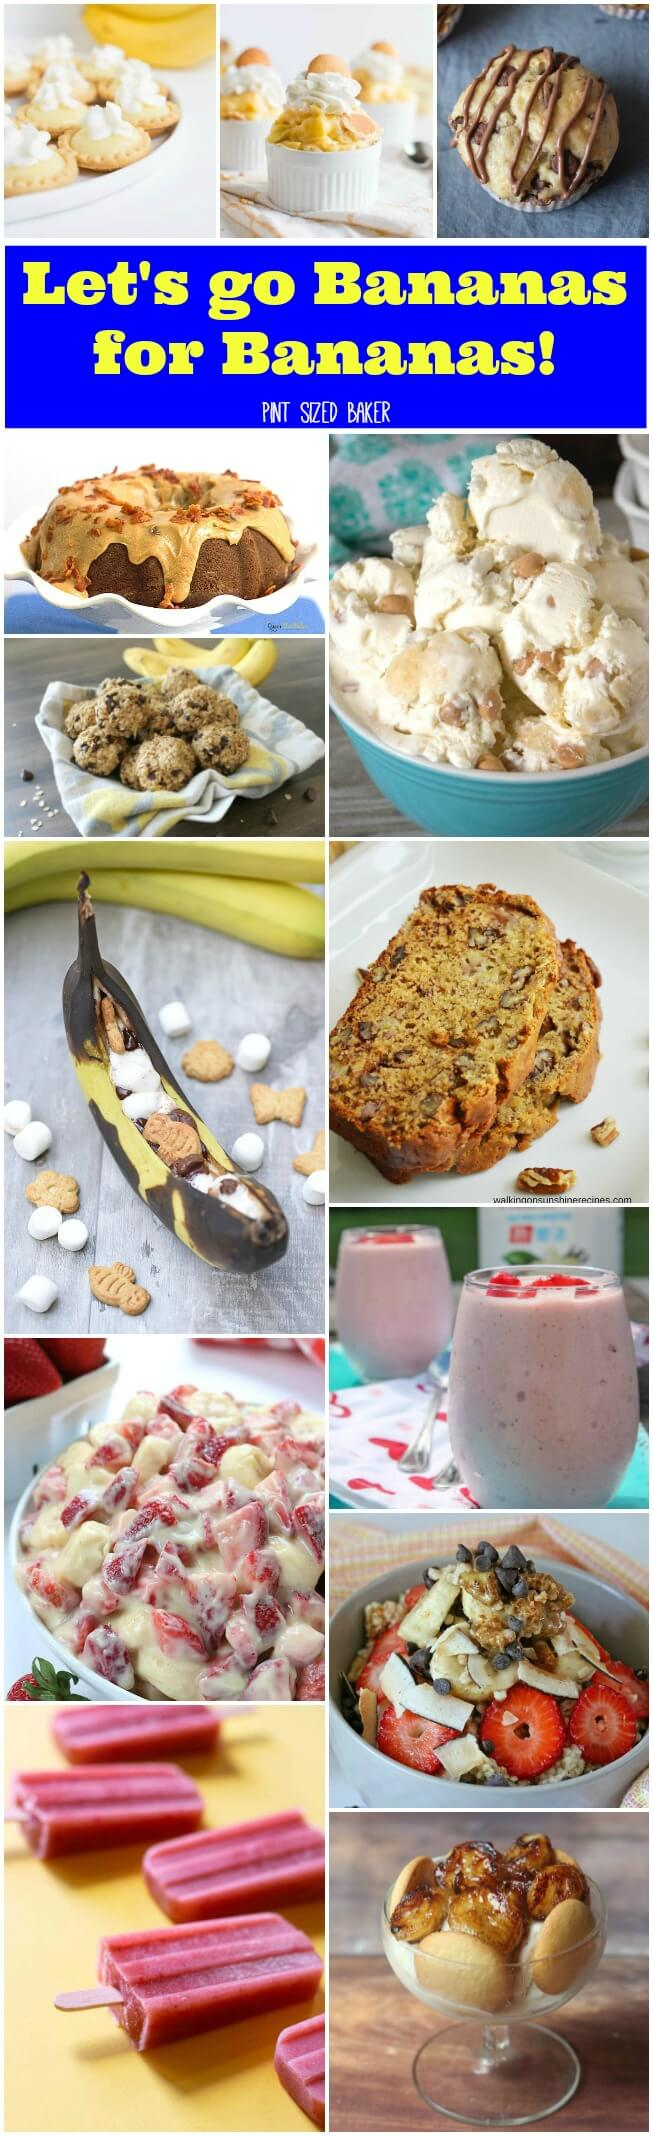 Let's go bananas for Bananas! If you're a banana lover you need these 15 recipes in your baking arsenal. Banana ice cream, bread, cakes and more!